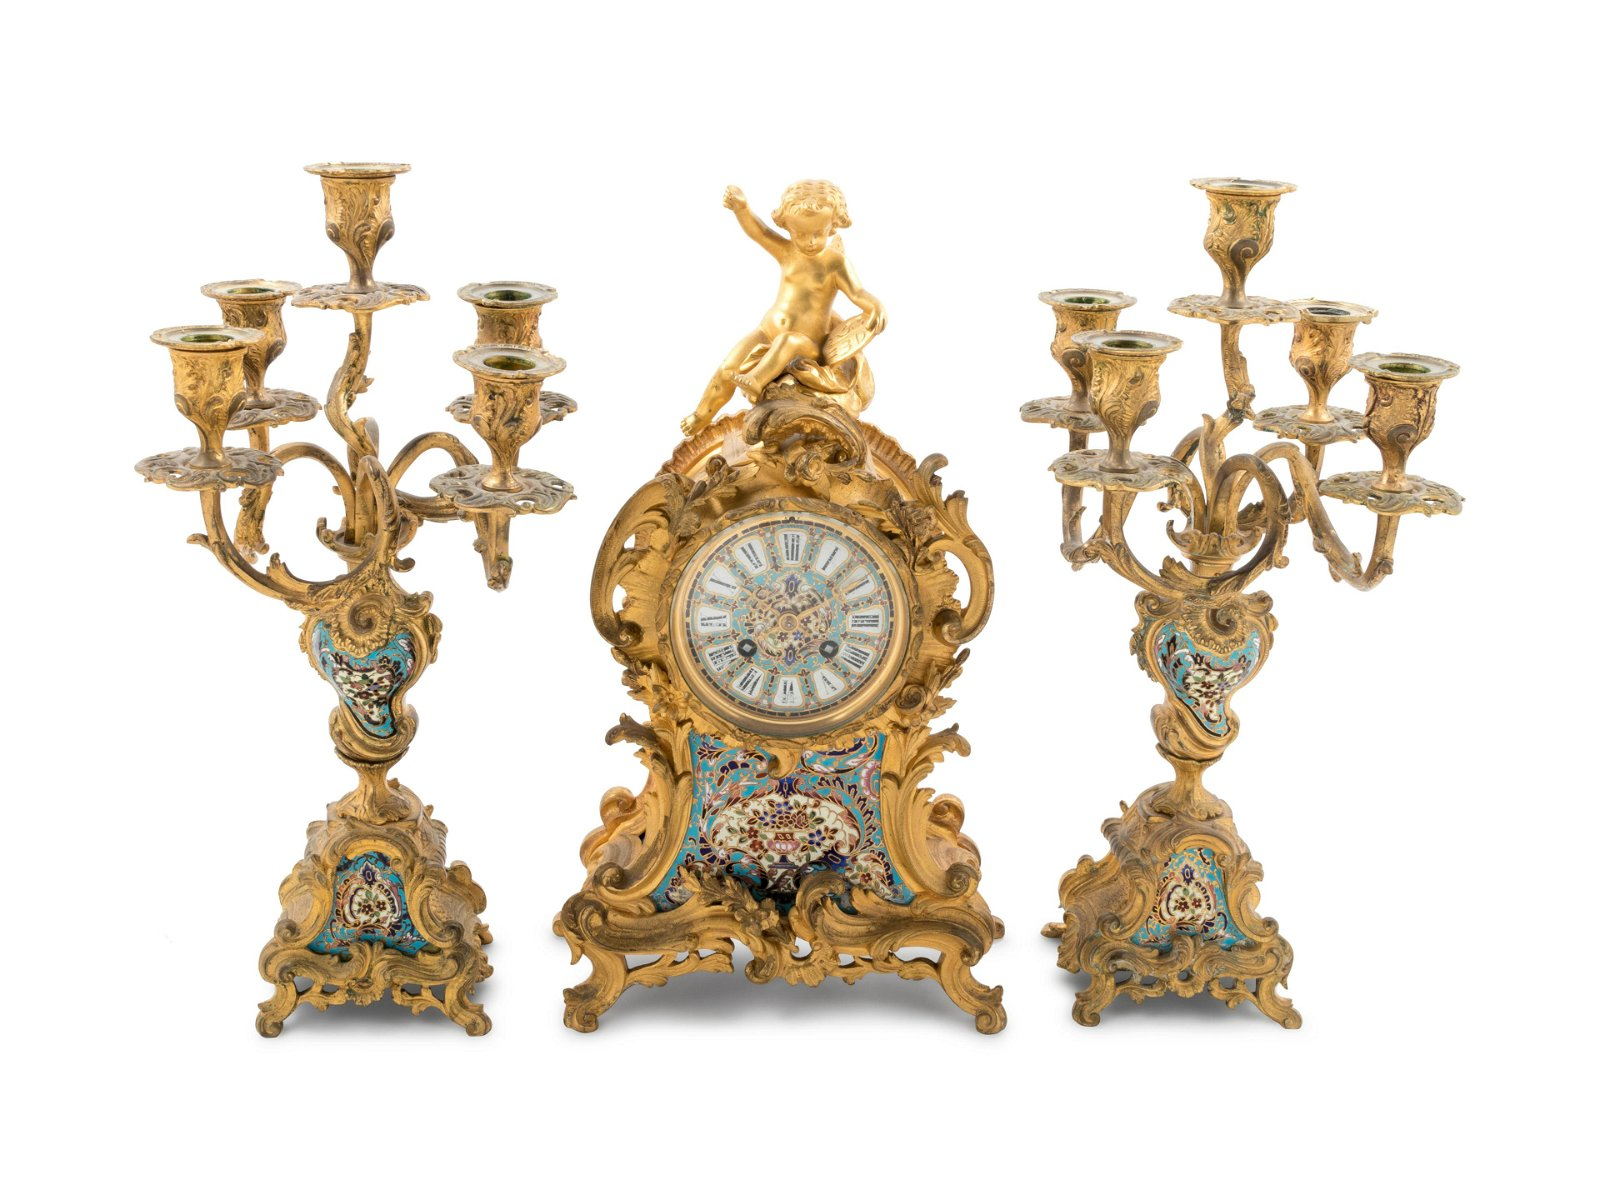 A Louis XV Style Gilt Bronze and Champleve Enamel Clock